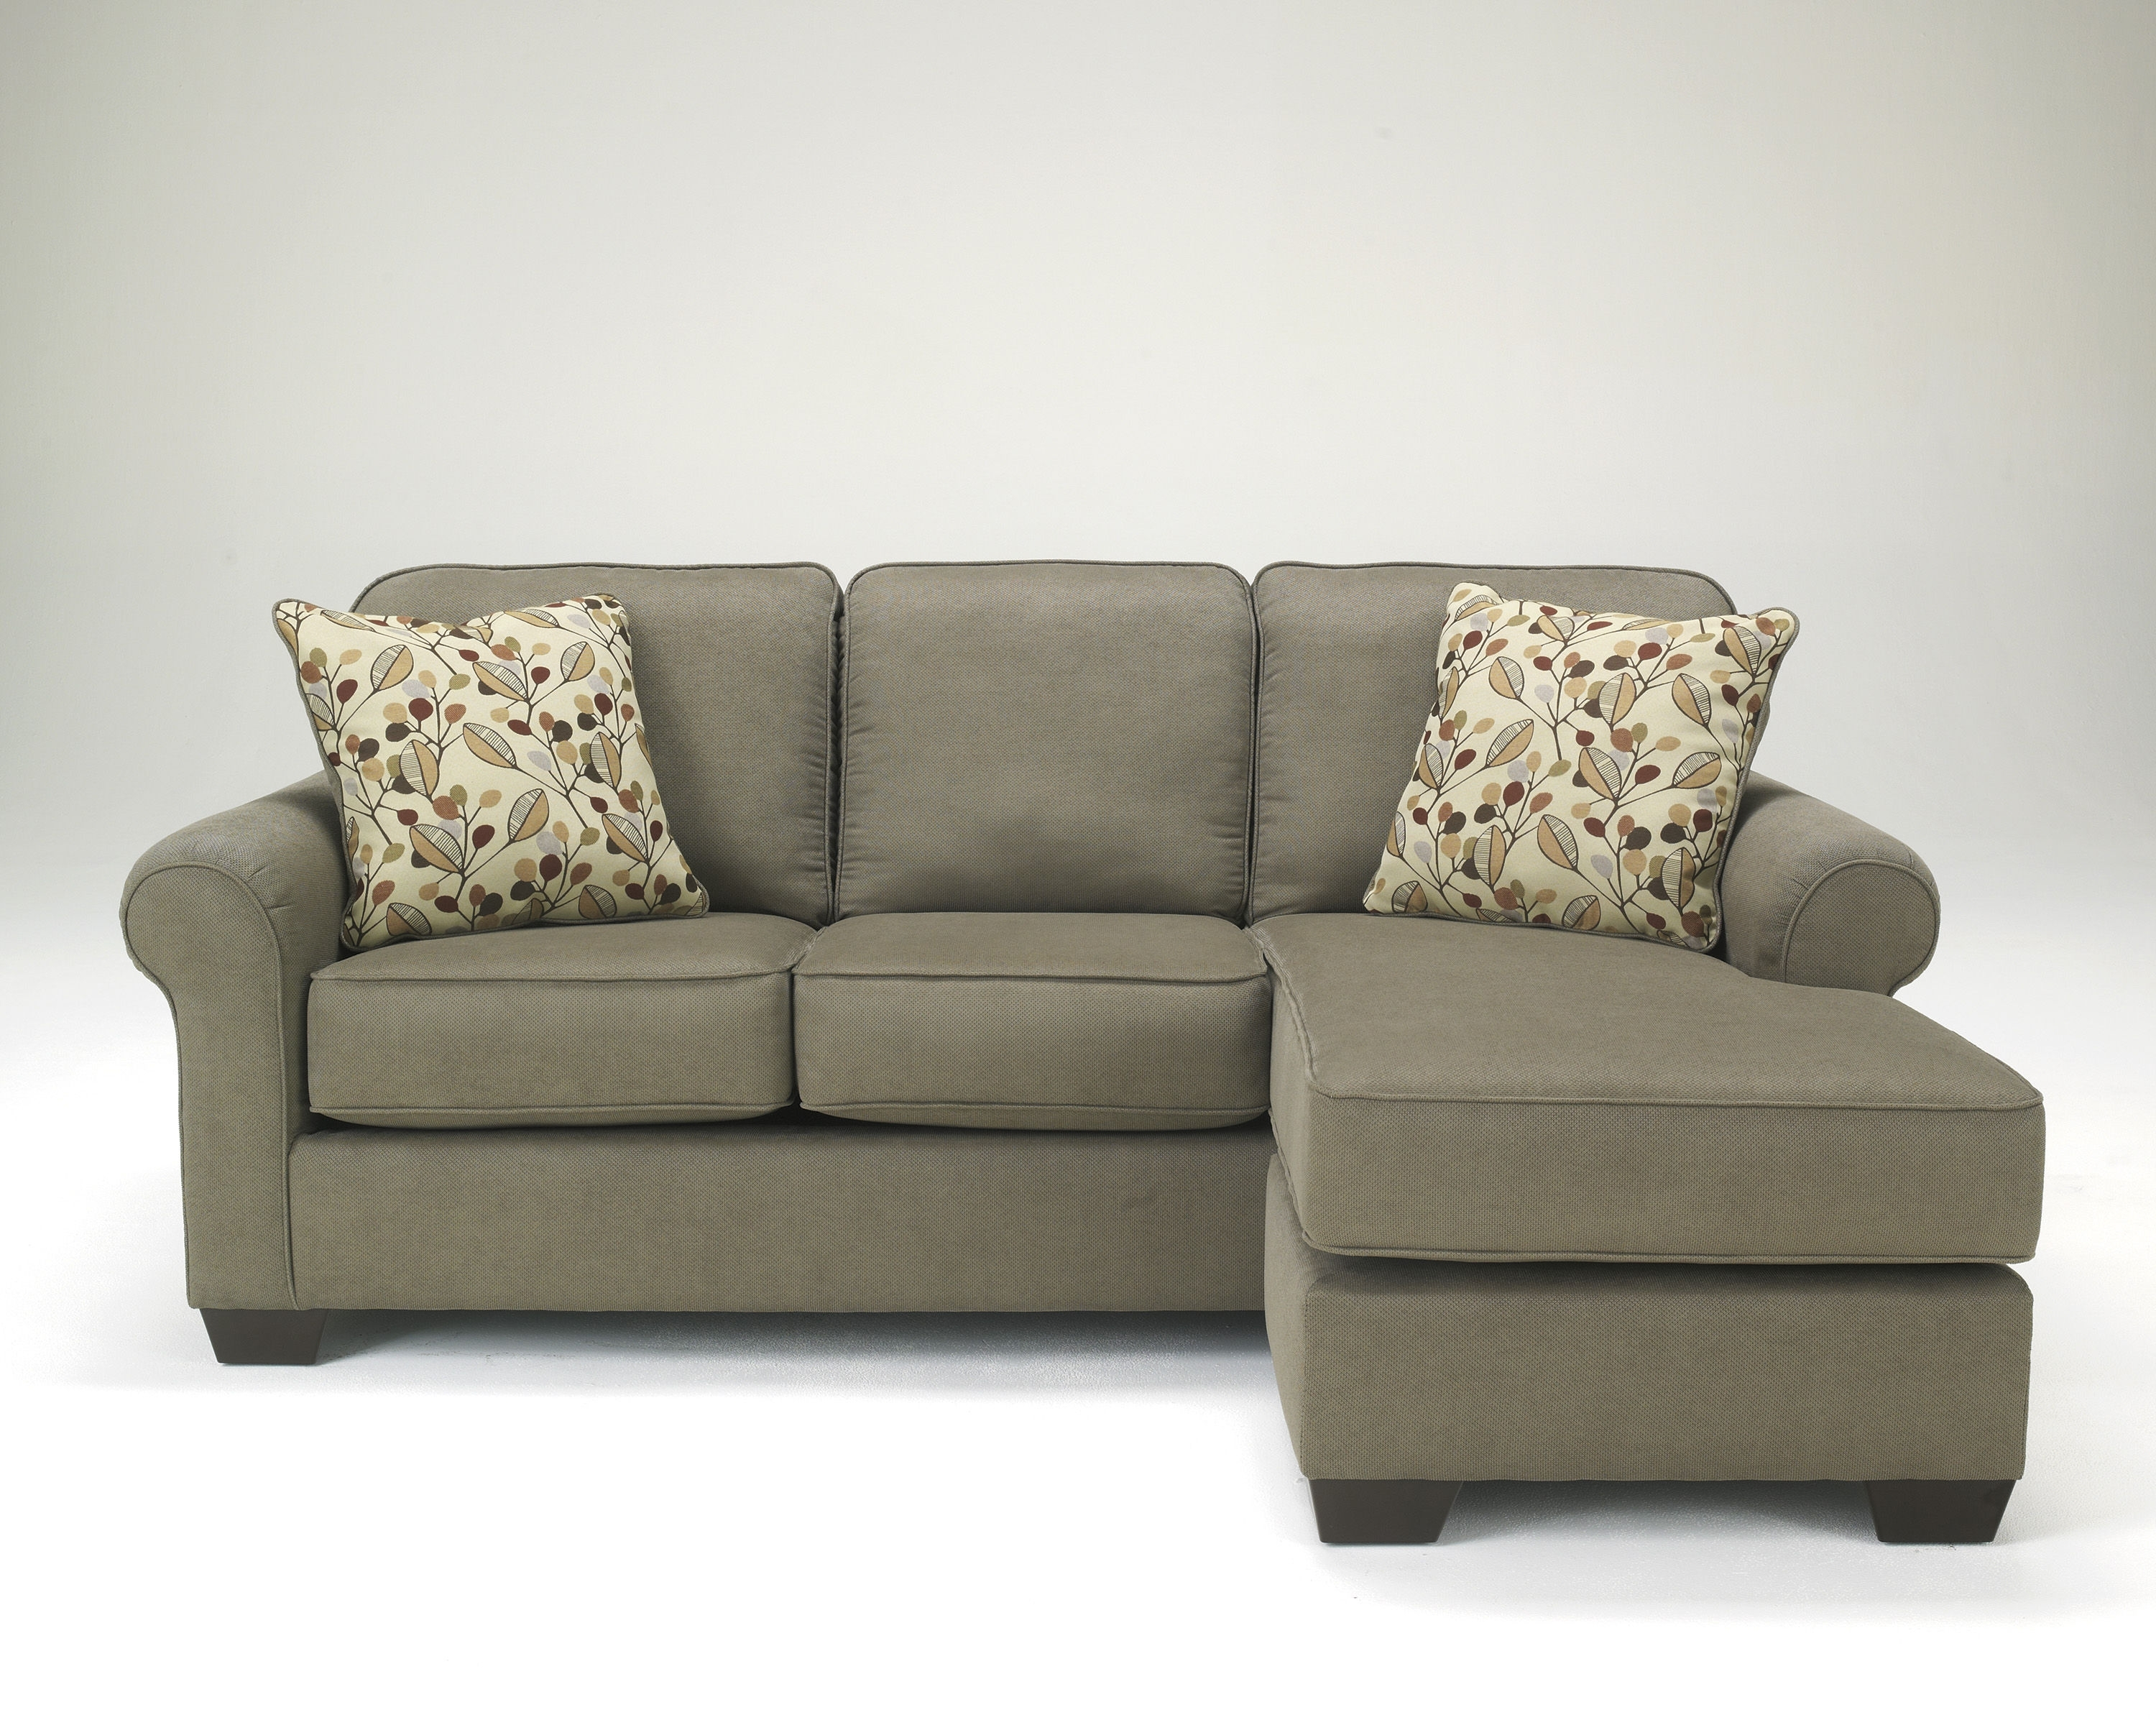 The Classy Home Pertaining To Latest Sofas With Chaise (View 14 of 15)